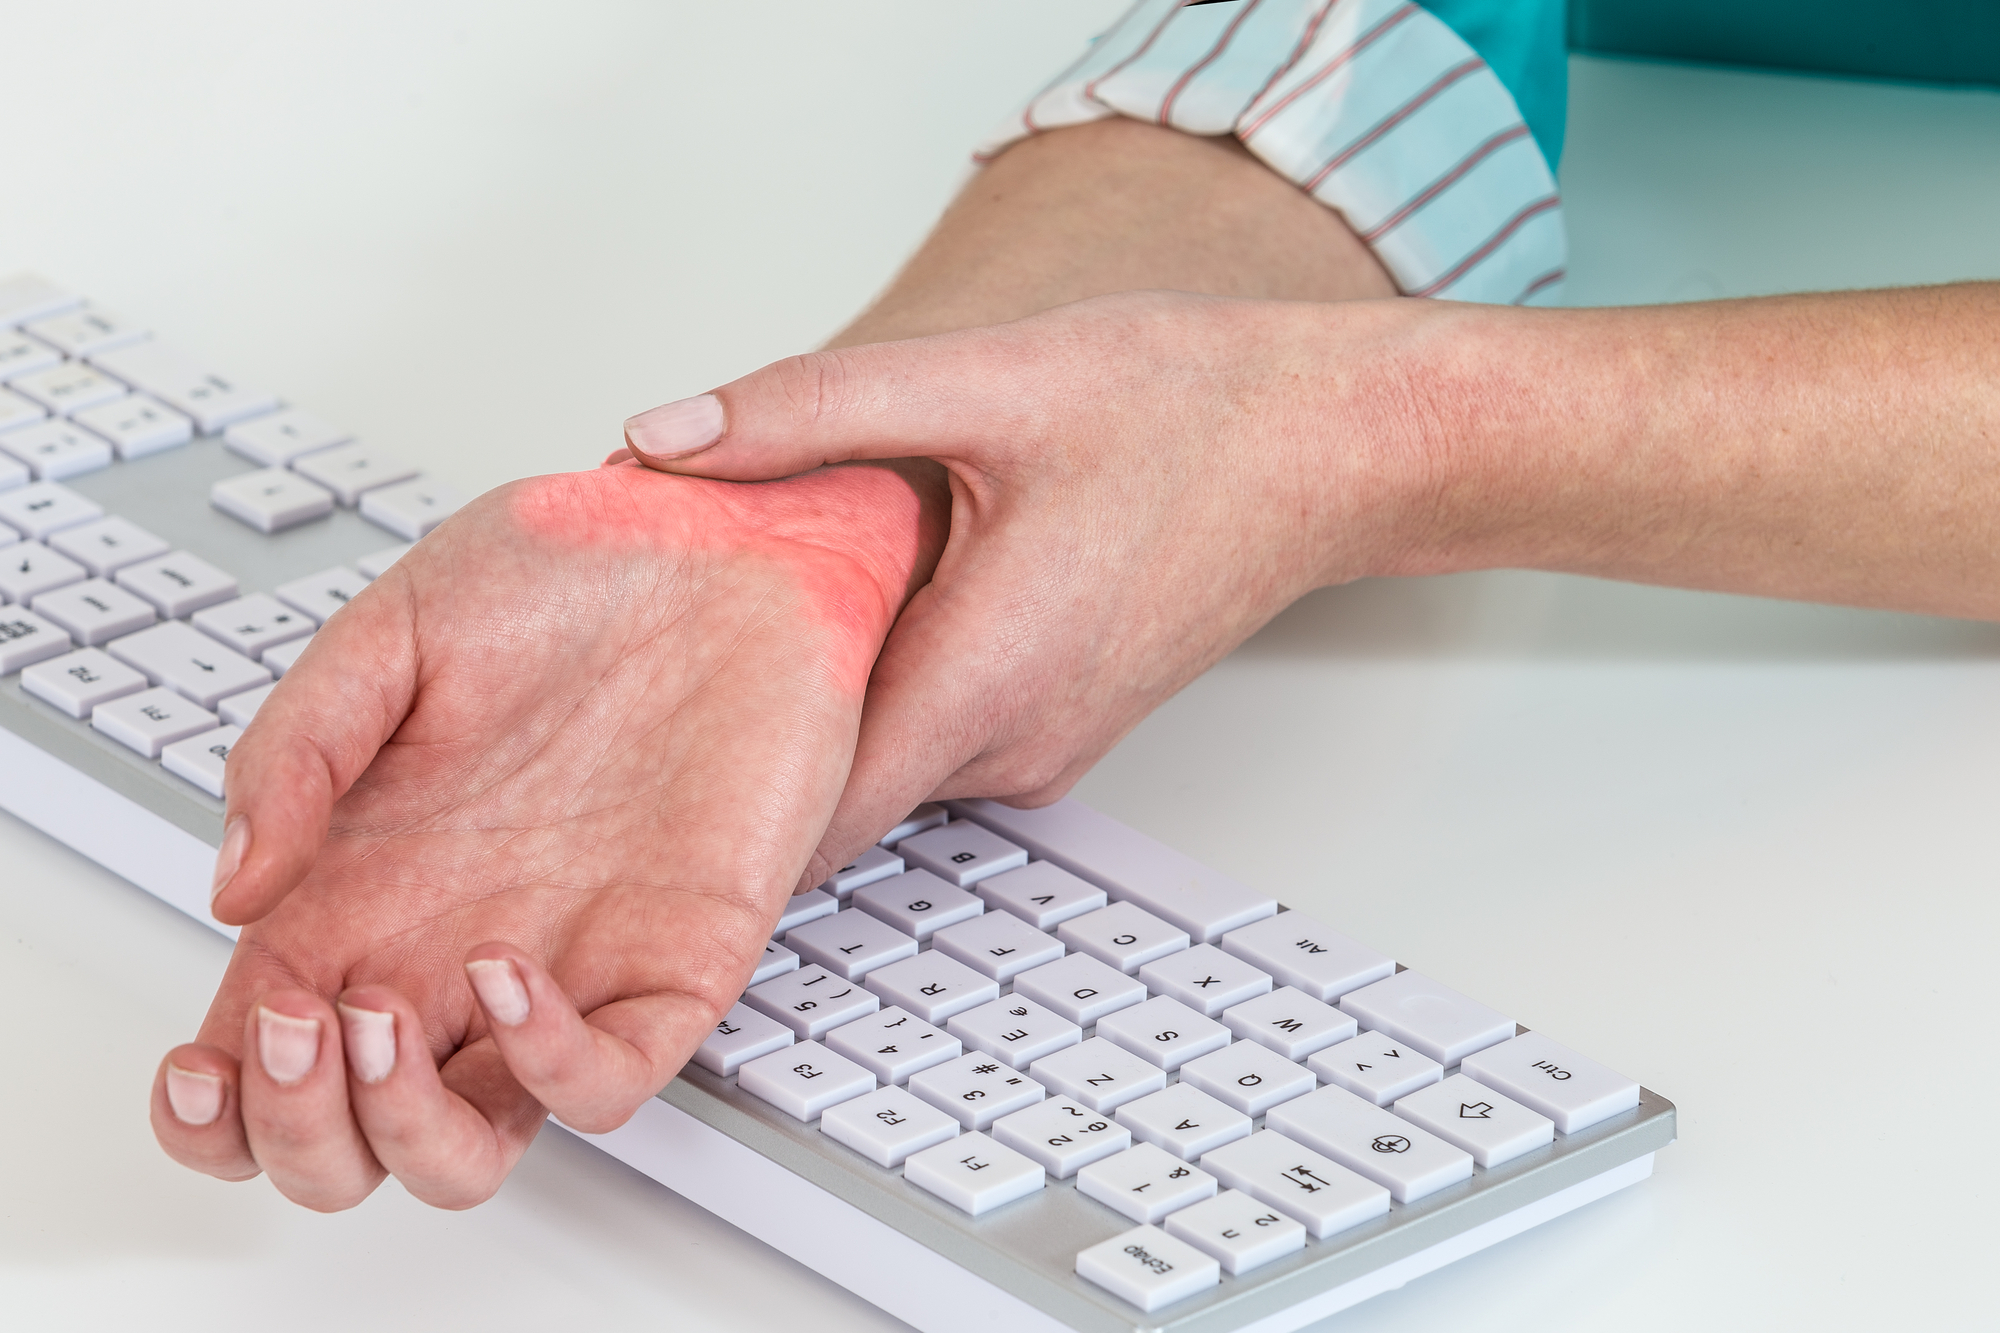 Repetitive hand use and hand positioning in extreme flexion or extension are the most common causes of carpal tunnel syndrome